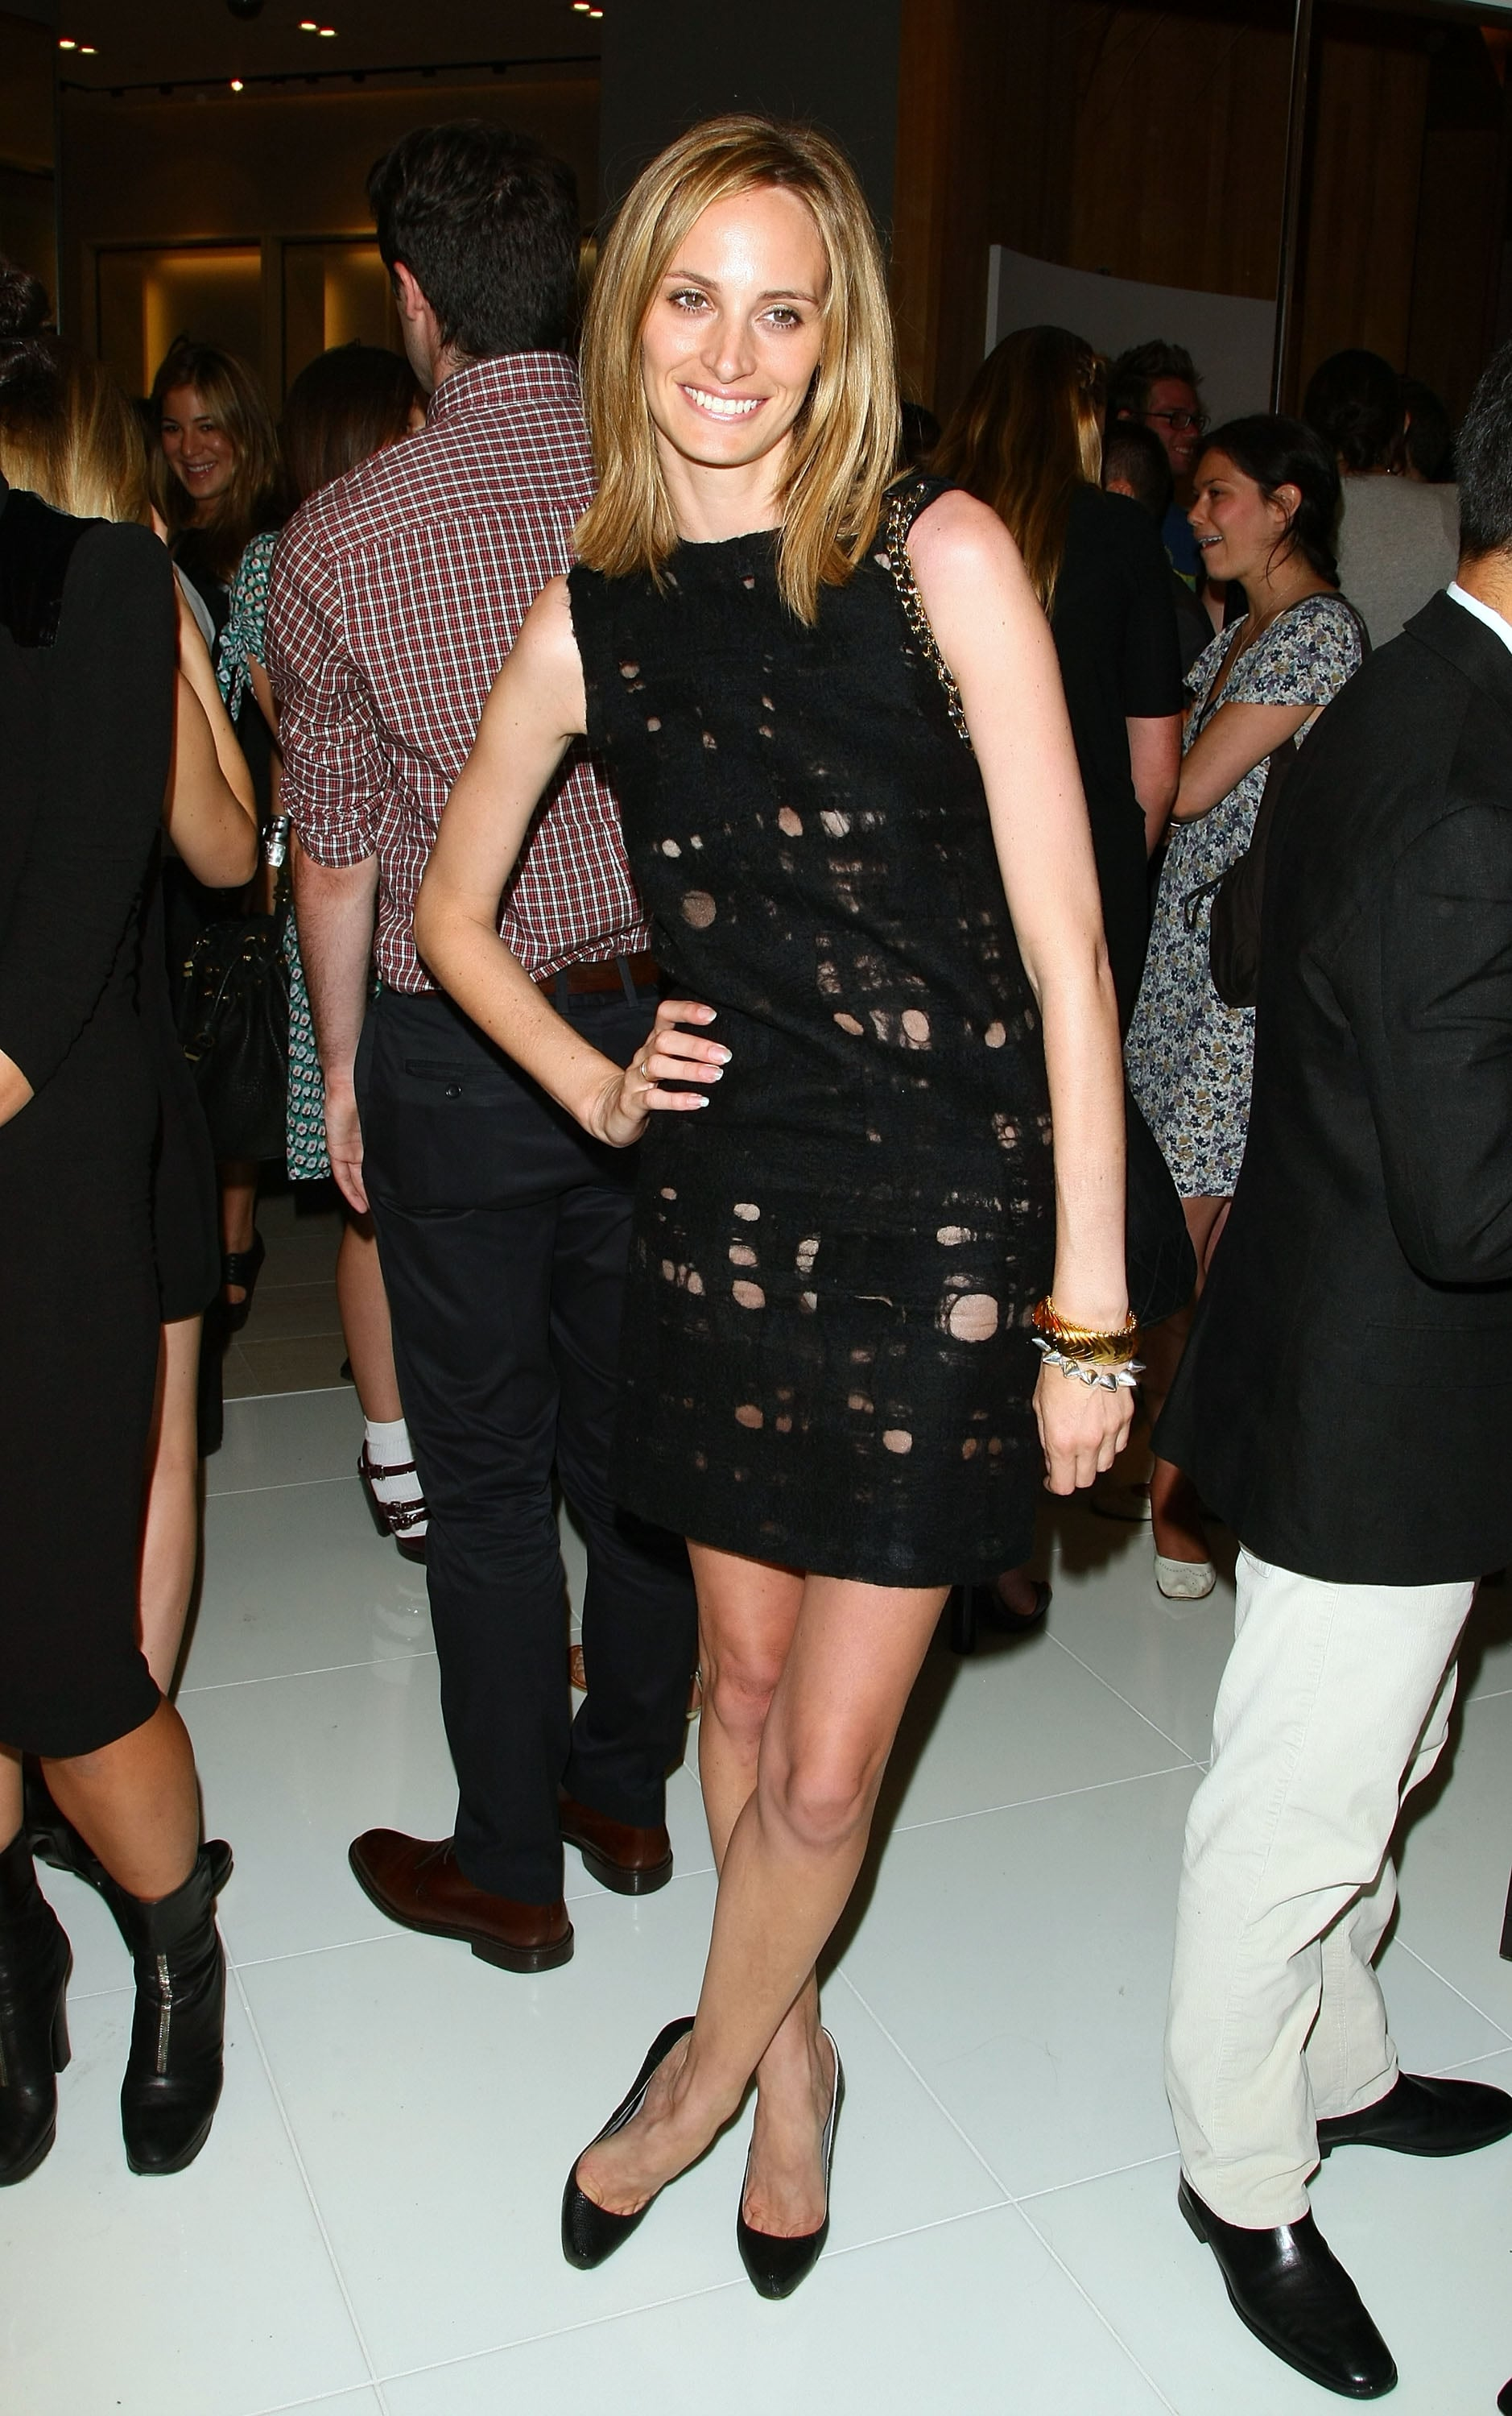 The Unexpected LBD: